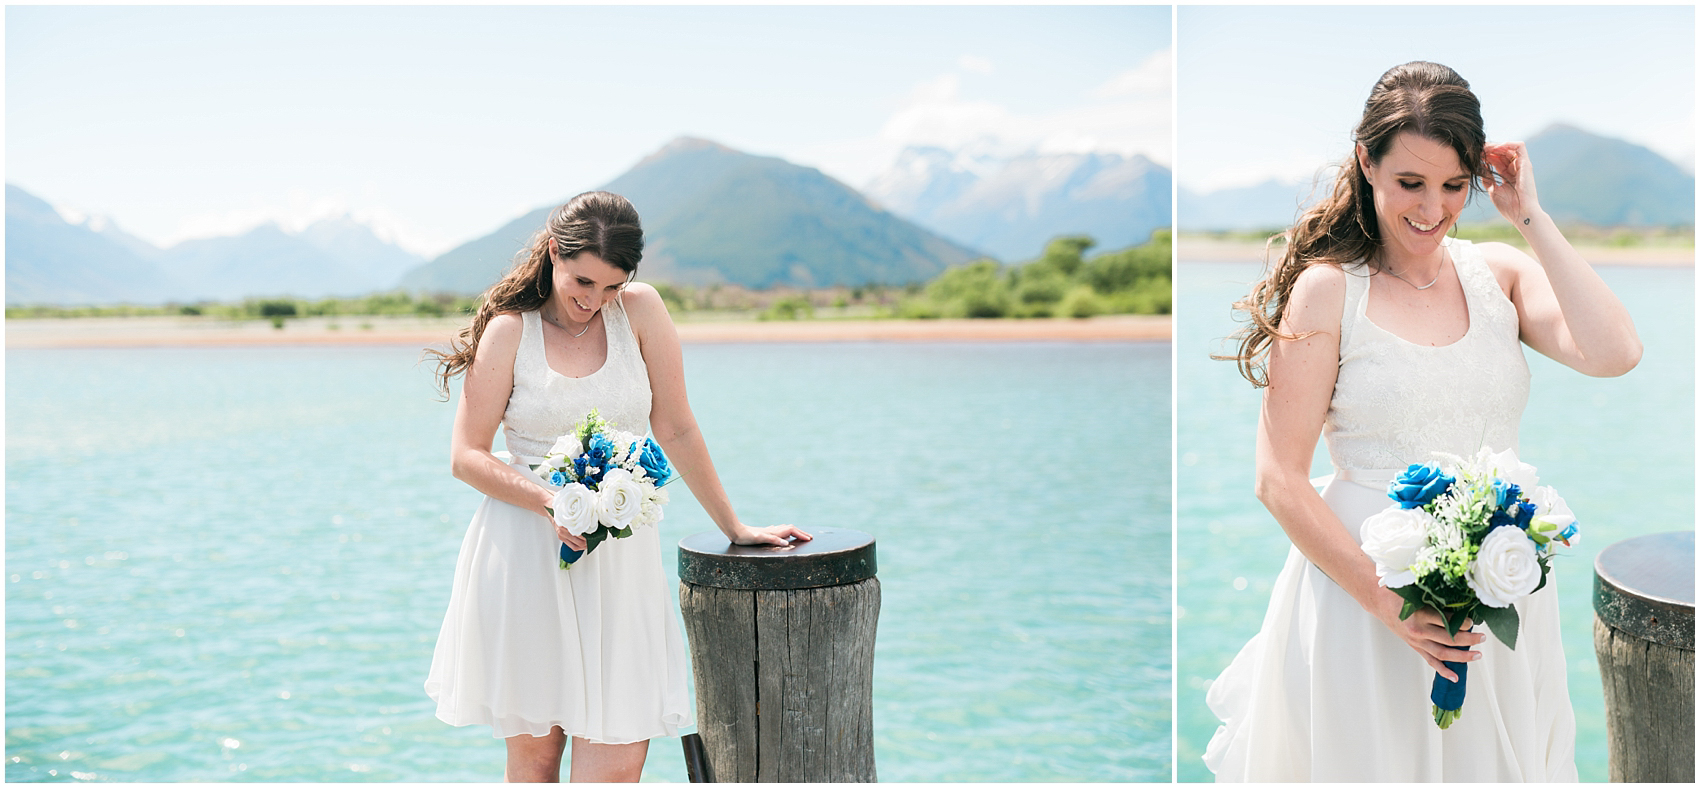 Queenstown New Zealand Wedding Photographer Bruna Fabricio Smetona Photo-0034.jpg